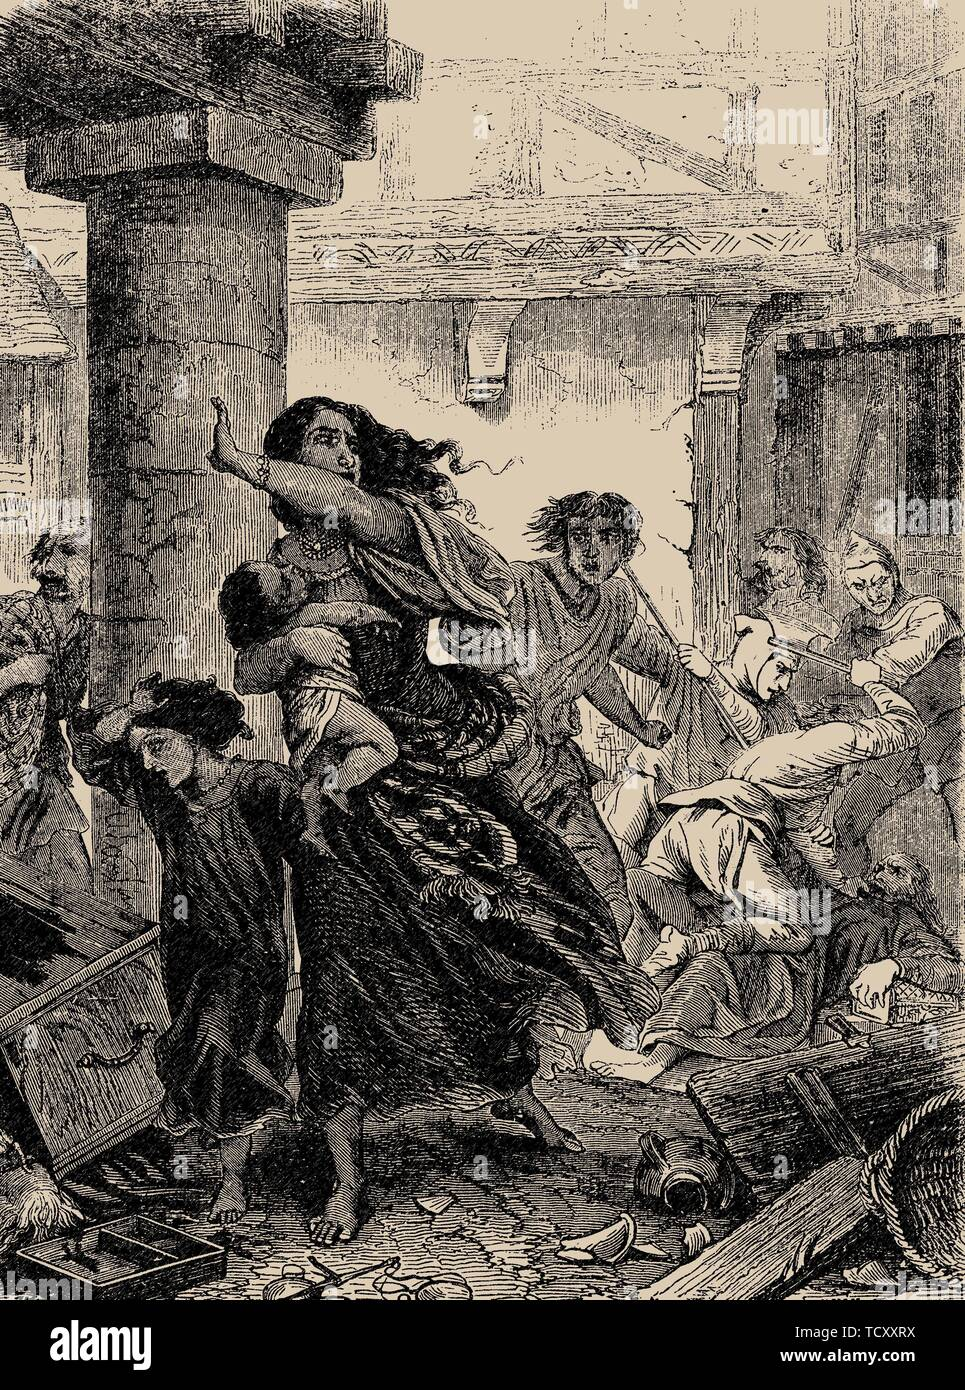 Rhineland Massacre of the Jews in 1096. From Histoire populaire de la France by Charles Lahure, 1866. Private Collection. - Stock Image